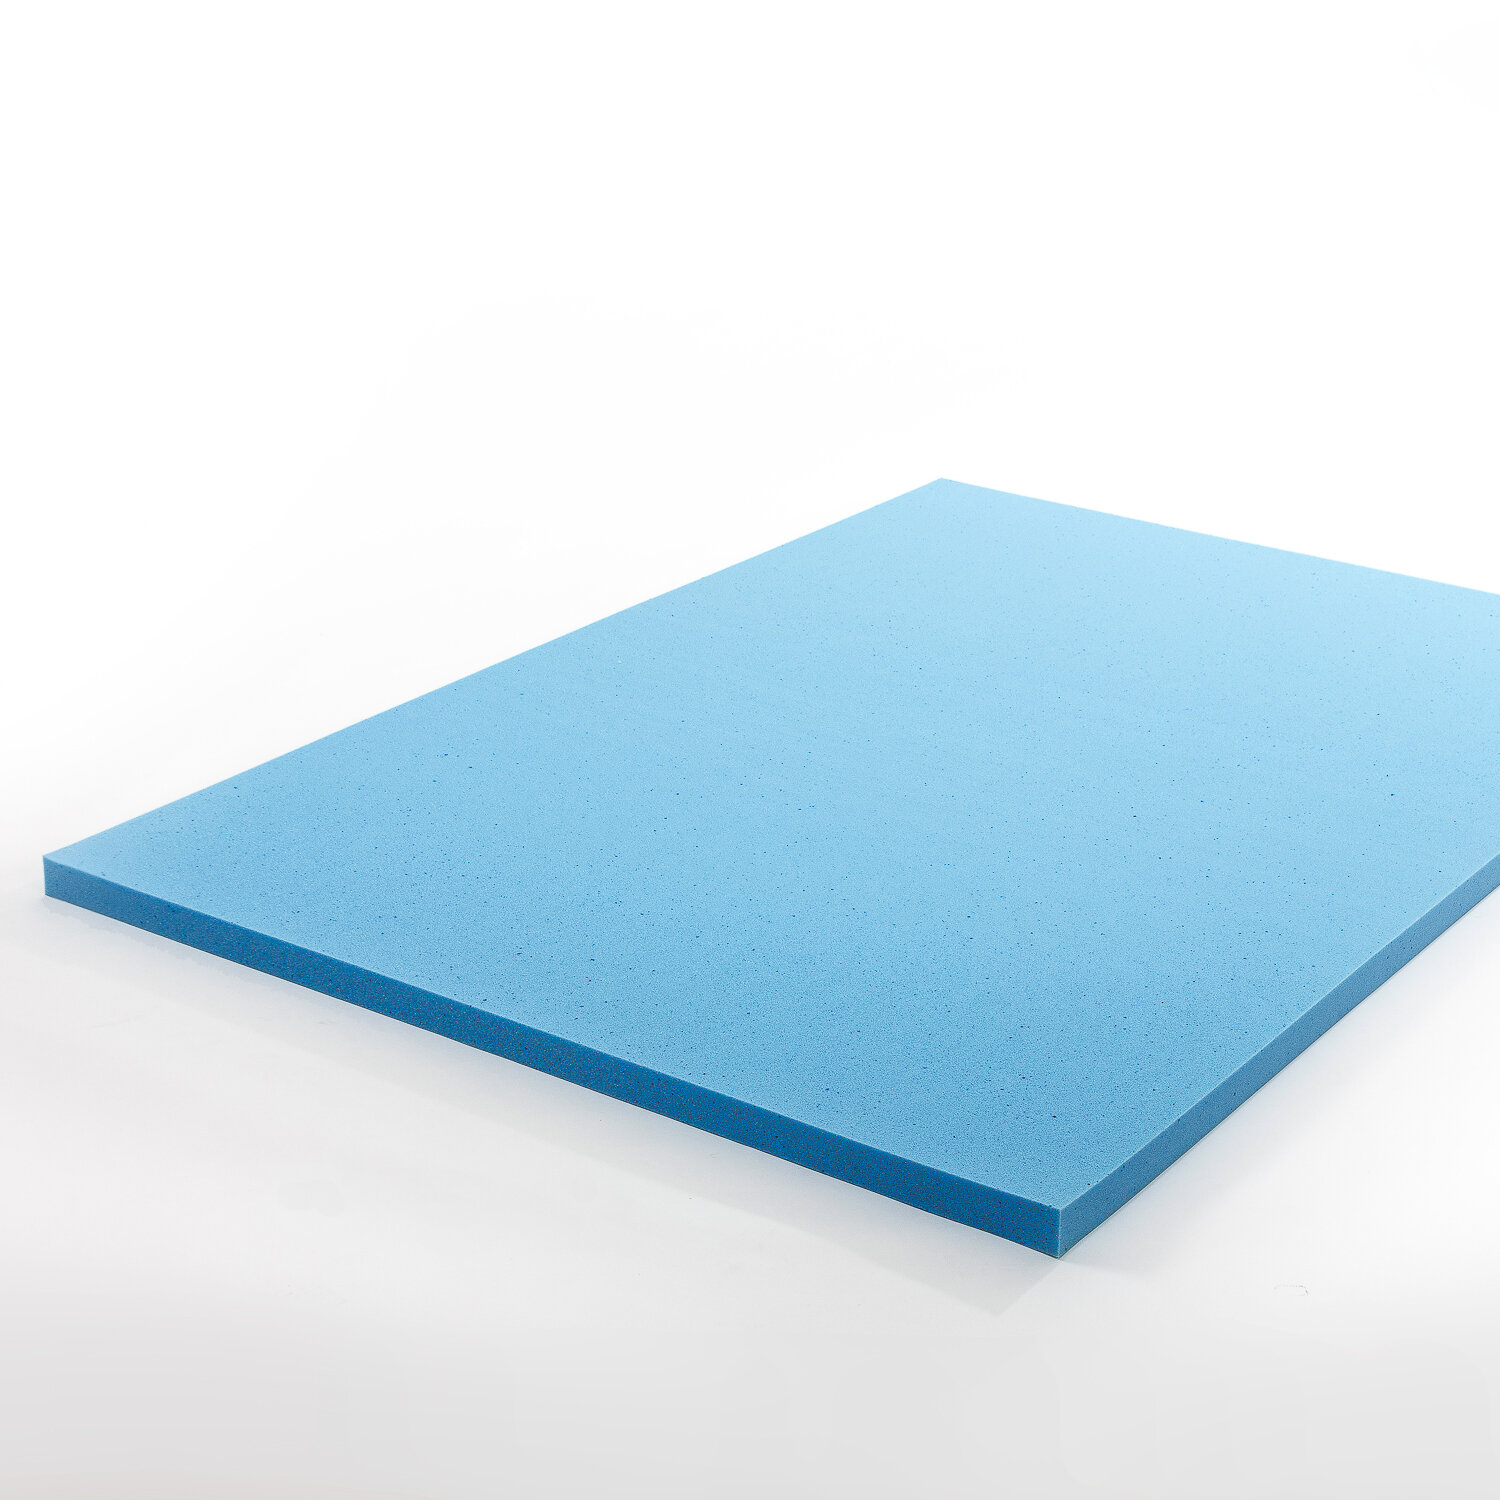 youth cover t height sleepharmony mat memory mats threshold velour trim orange products twin foam width in item mattress